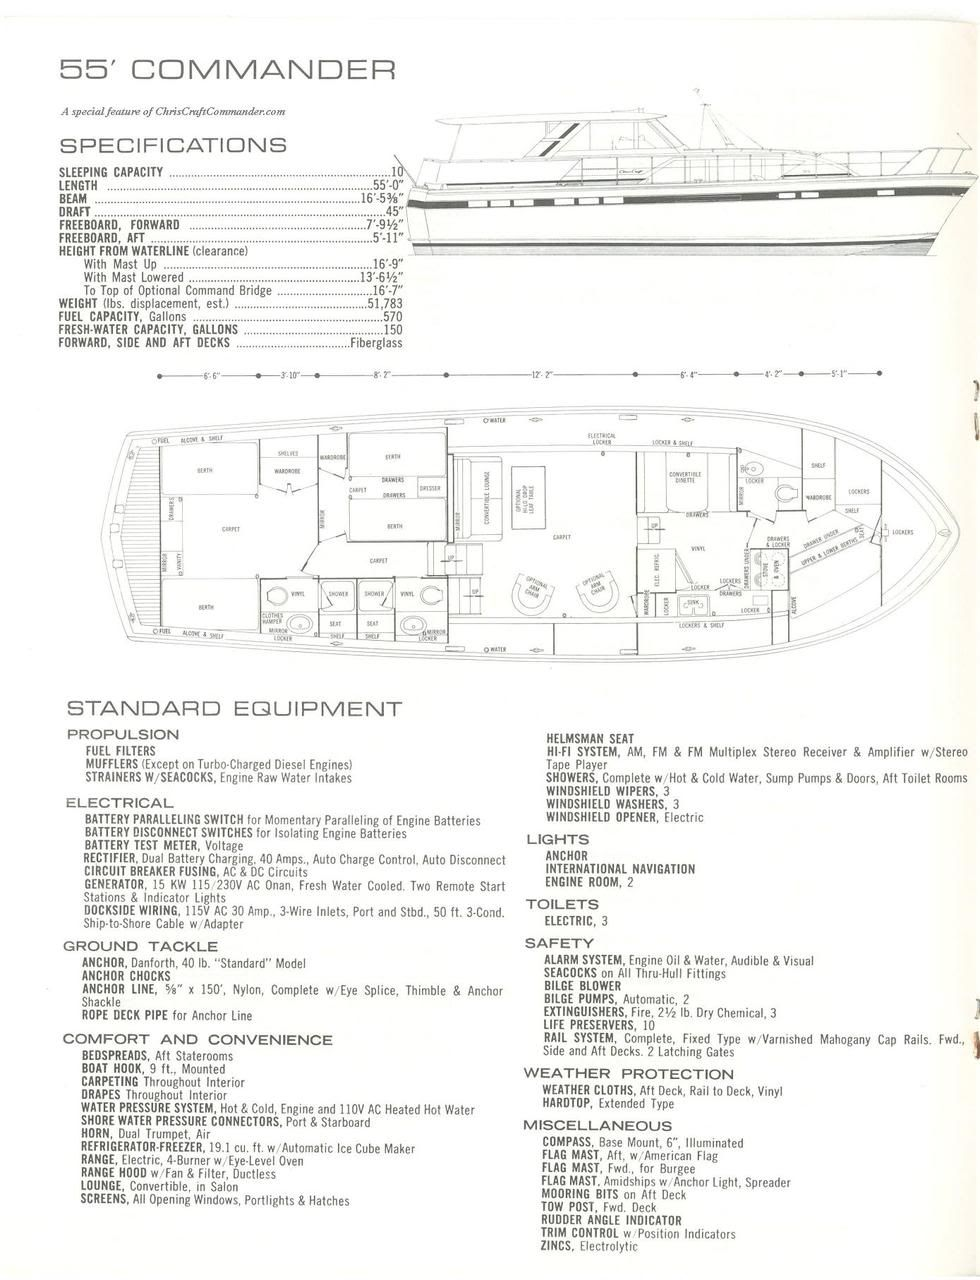 9c3ec0d27184c4e56da974320de497ad 1972 55' chris craft commander specs and floorplan chris craft Chris Craft Marine Engines at alyssarenee.co